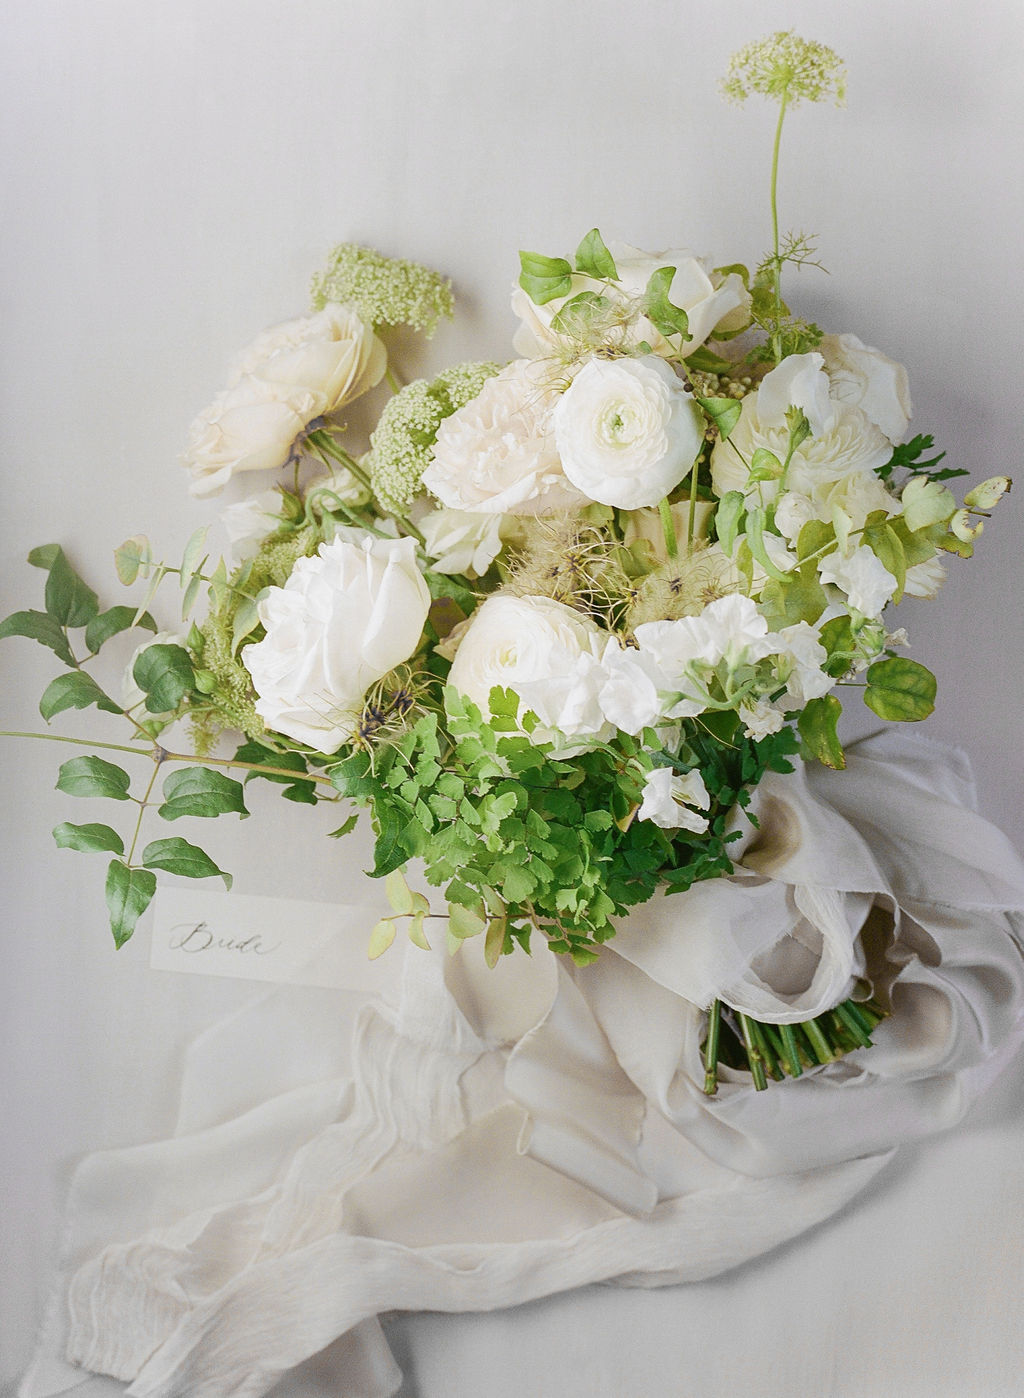 bouquet of white garden roses and queen annes lace